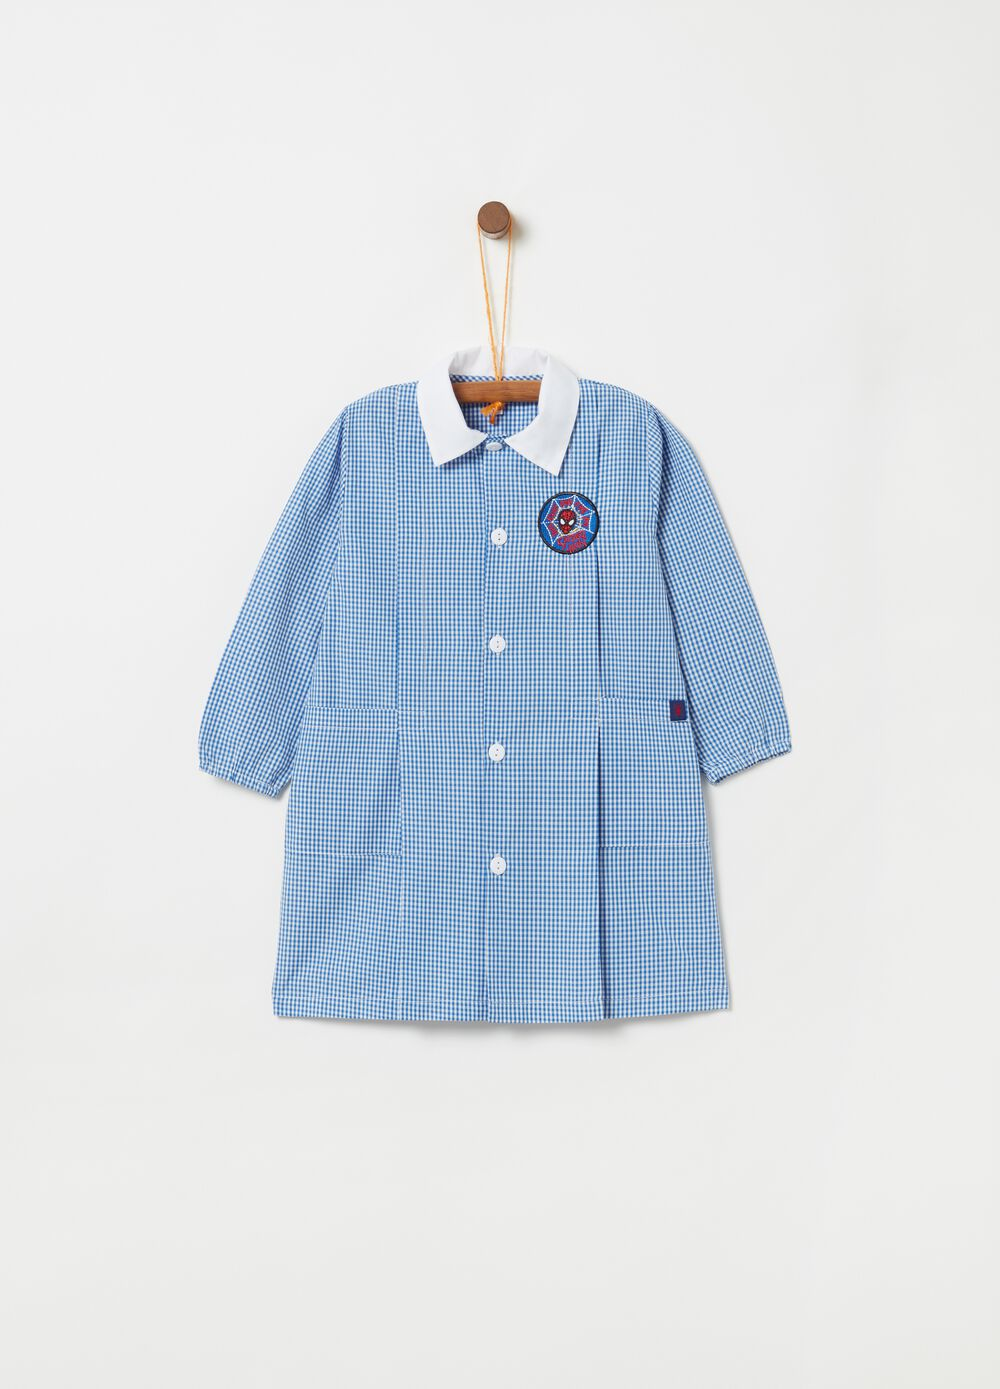 Spider-Man school smock with checked pattern